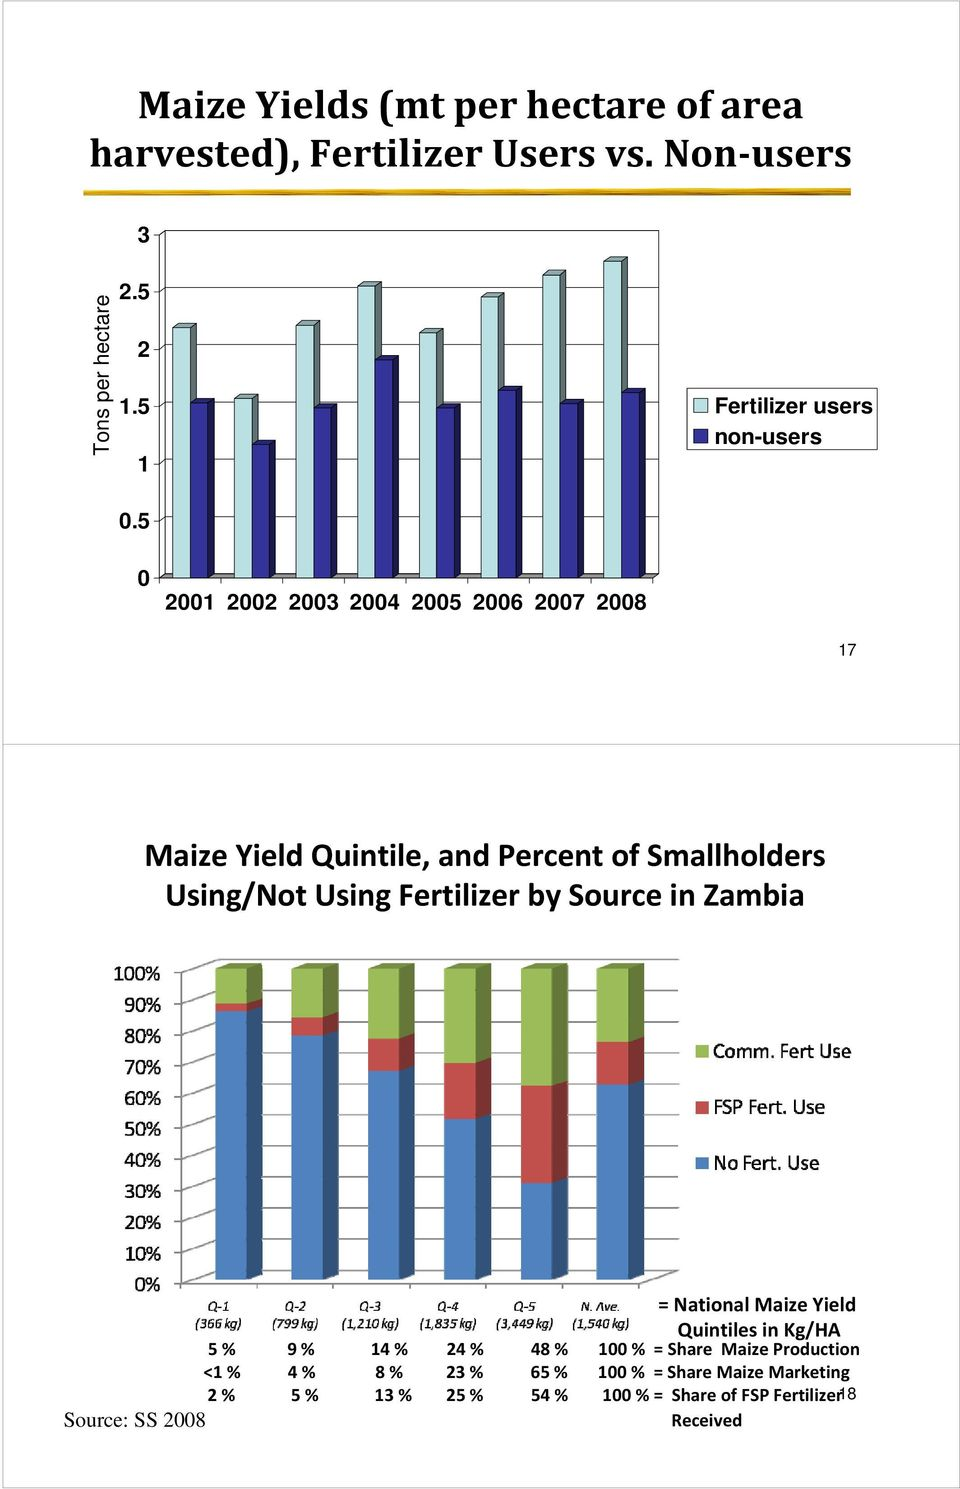 5 0 2001 2002 2003 2004 2005 2006 2007 2008 17 Maize Yield Quintile, and Percent of Smallholders Using/Not Using Fertilizer by